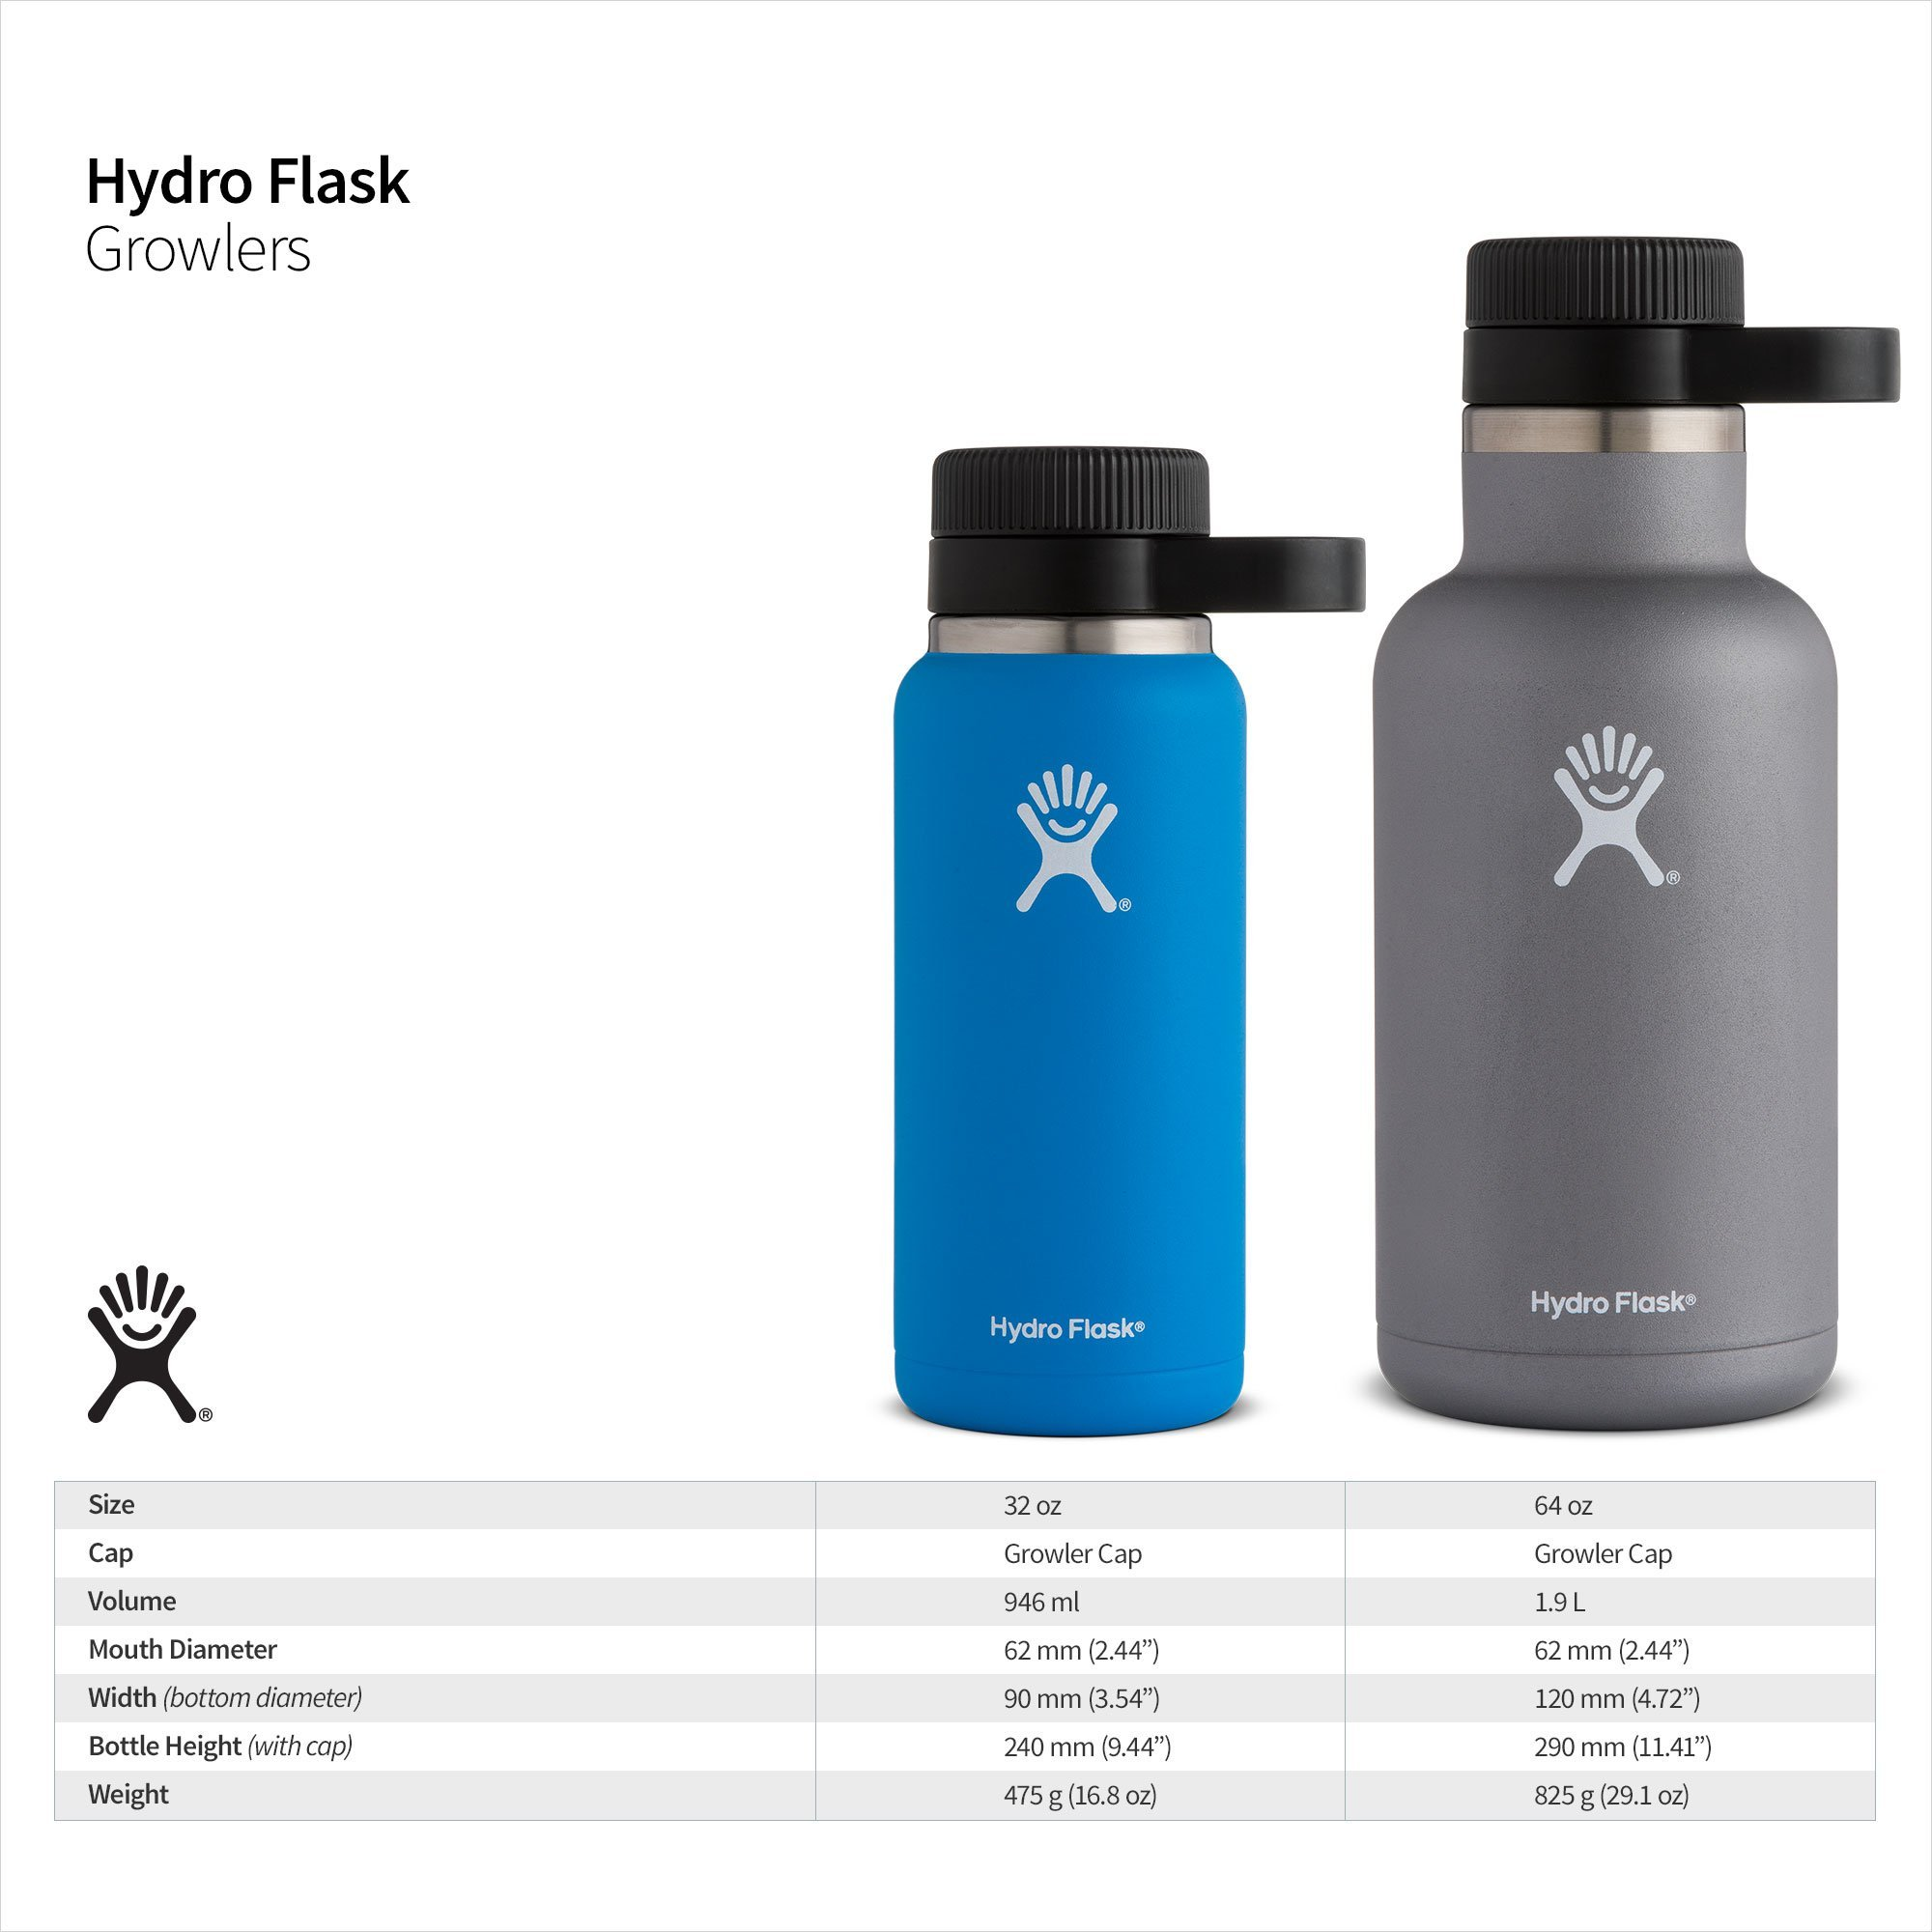 Hydro Flask G64001 64 oz. Beer Growler, 64 pz (1900 ml) Mouth, Black w Lid by Hydro Flask (Image #3)